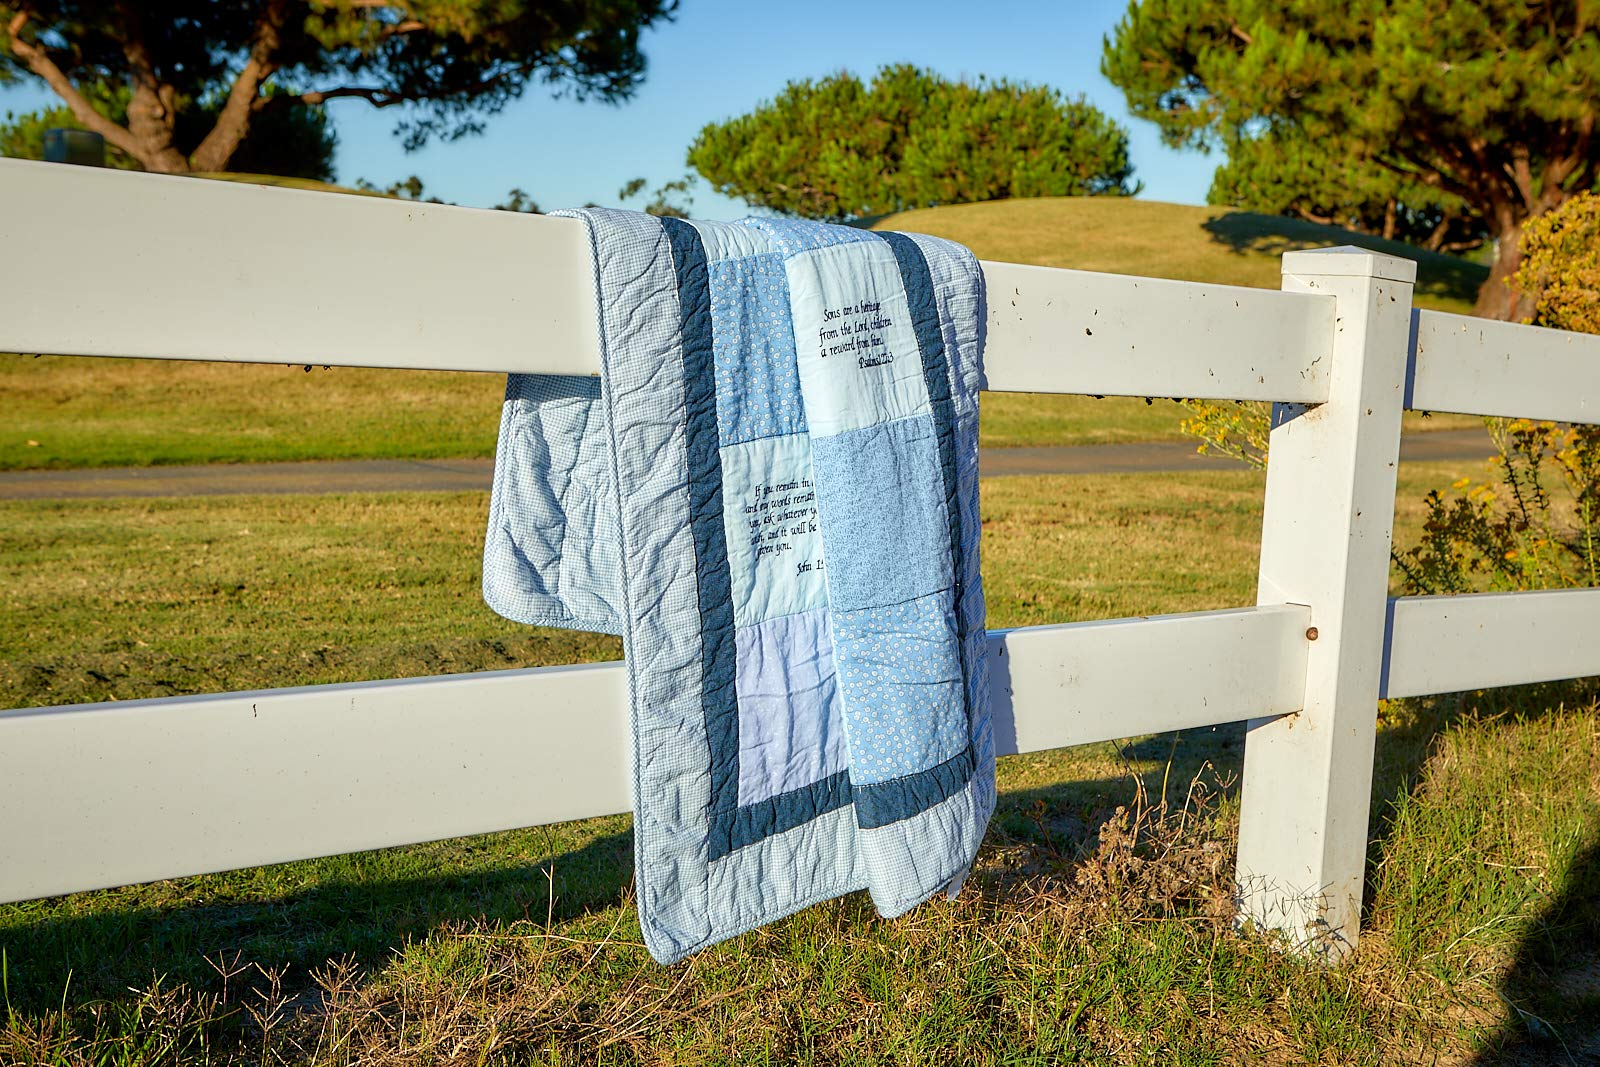 Bible Verse Baby Quilt - Beautiful Cotton Blanket Embroidered with Scriptures - Unique Christian Gifts for Baptism or Baby Shower - Boy by Stuff4Tots